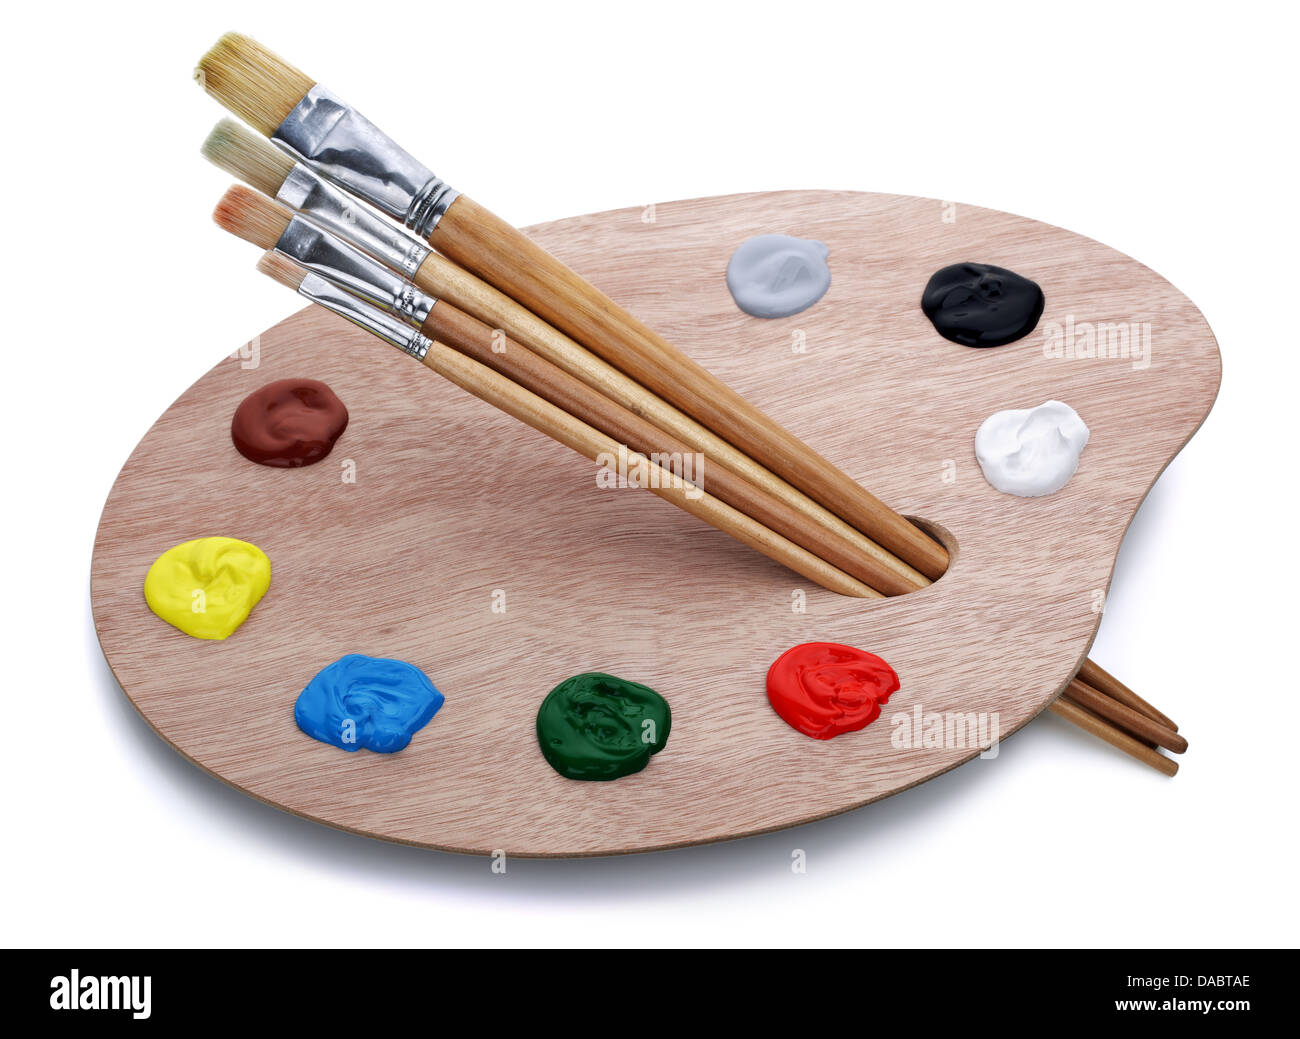 Artist's palette with brushes - Stock Image